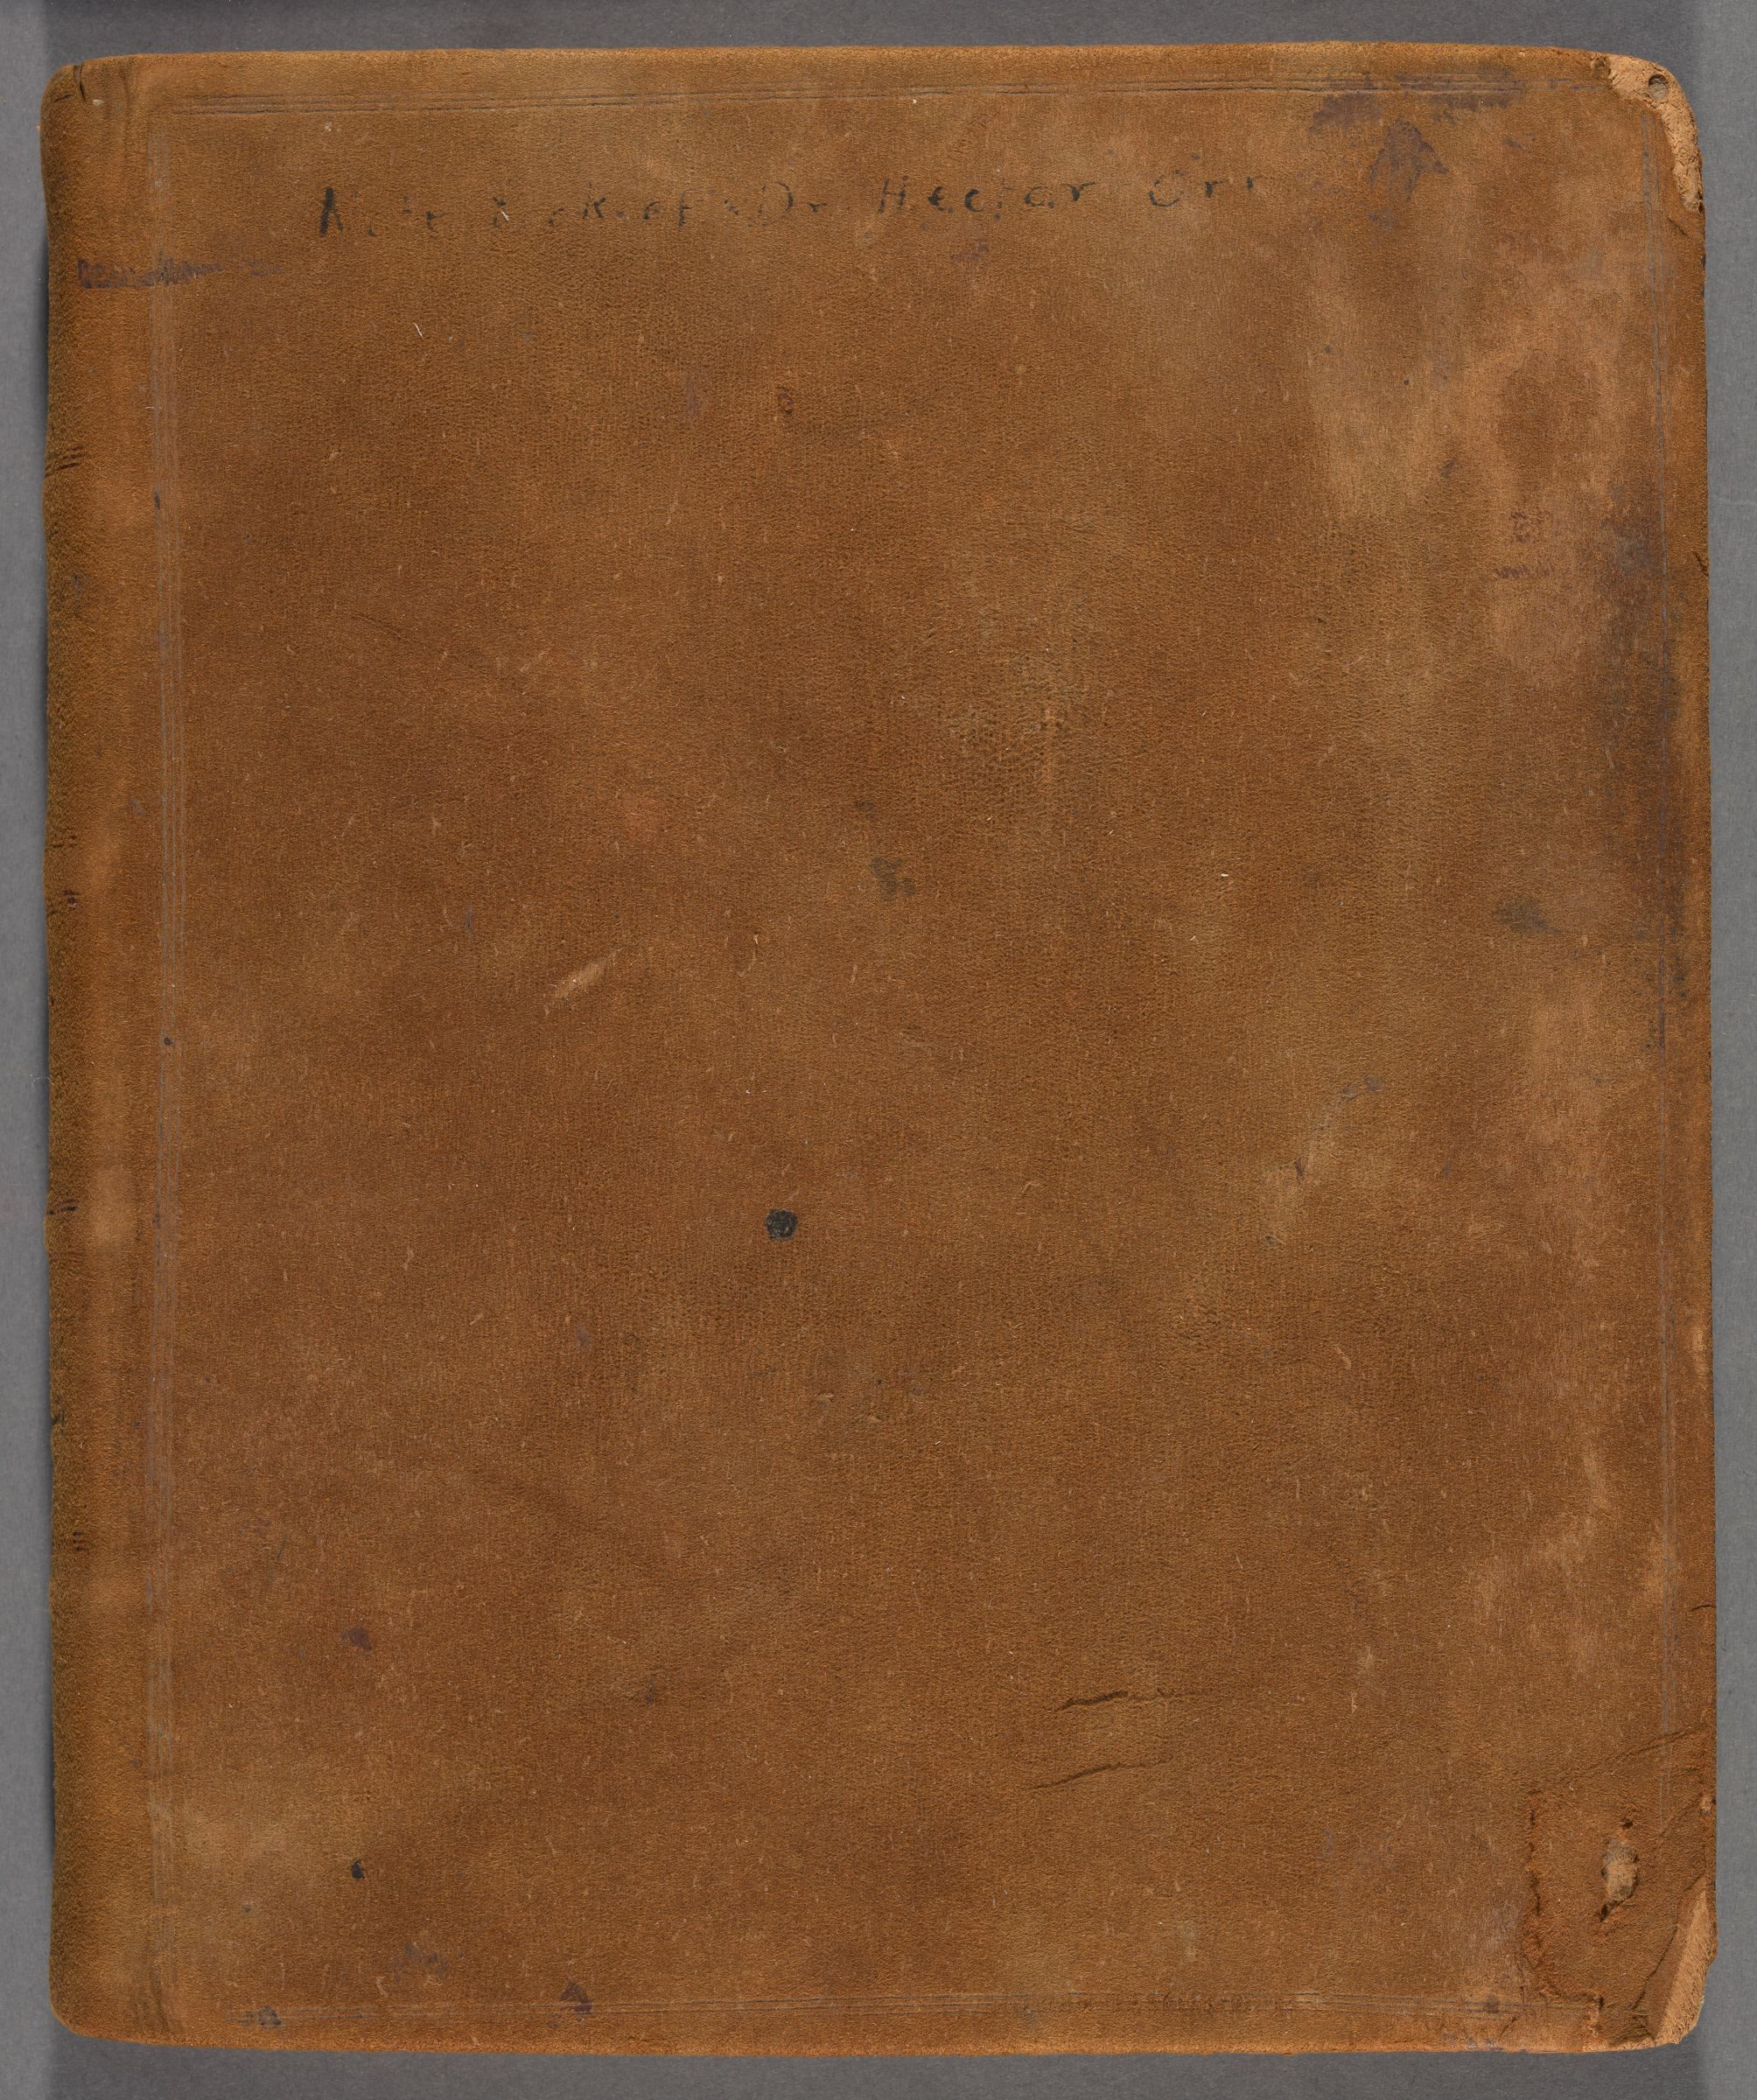 Commonplace book of Hector Orr, 1789-1804